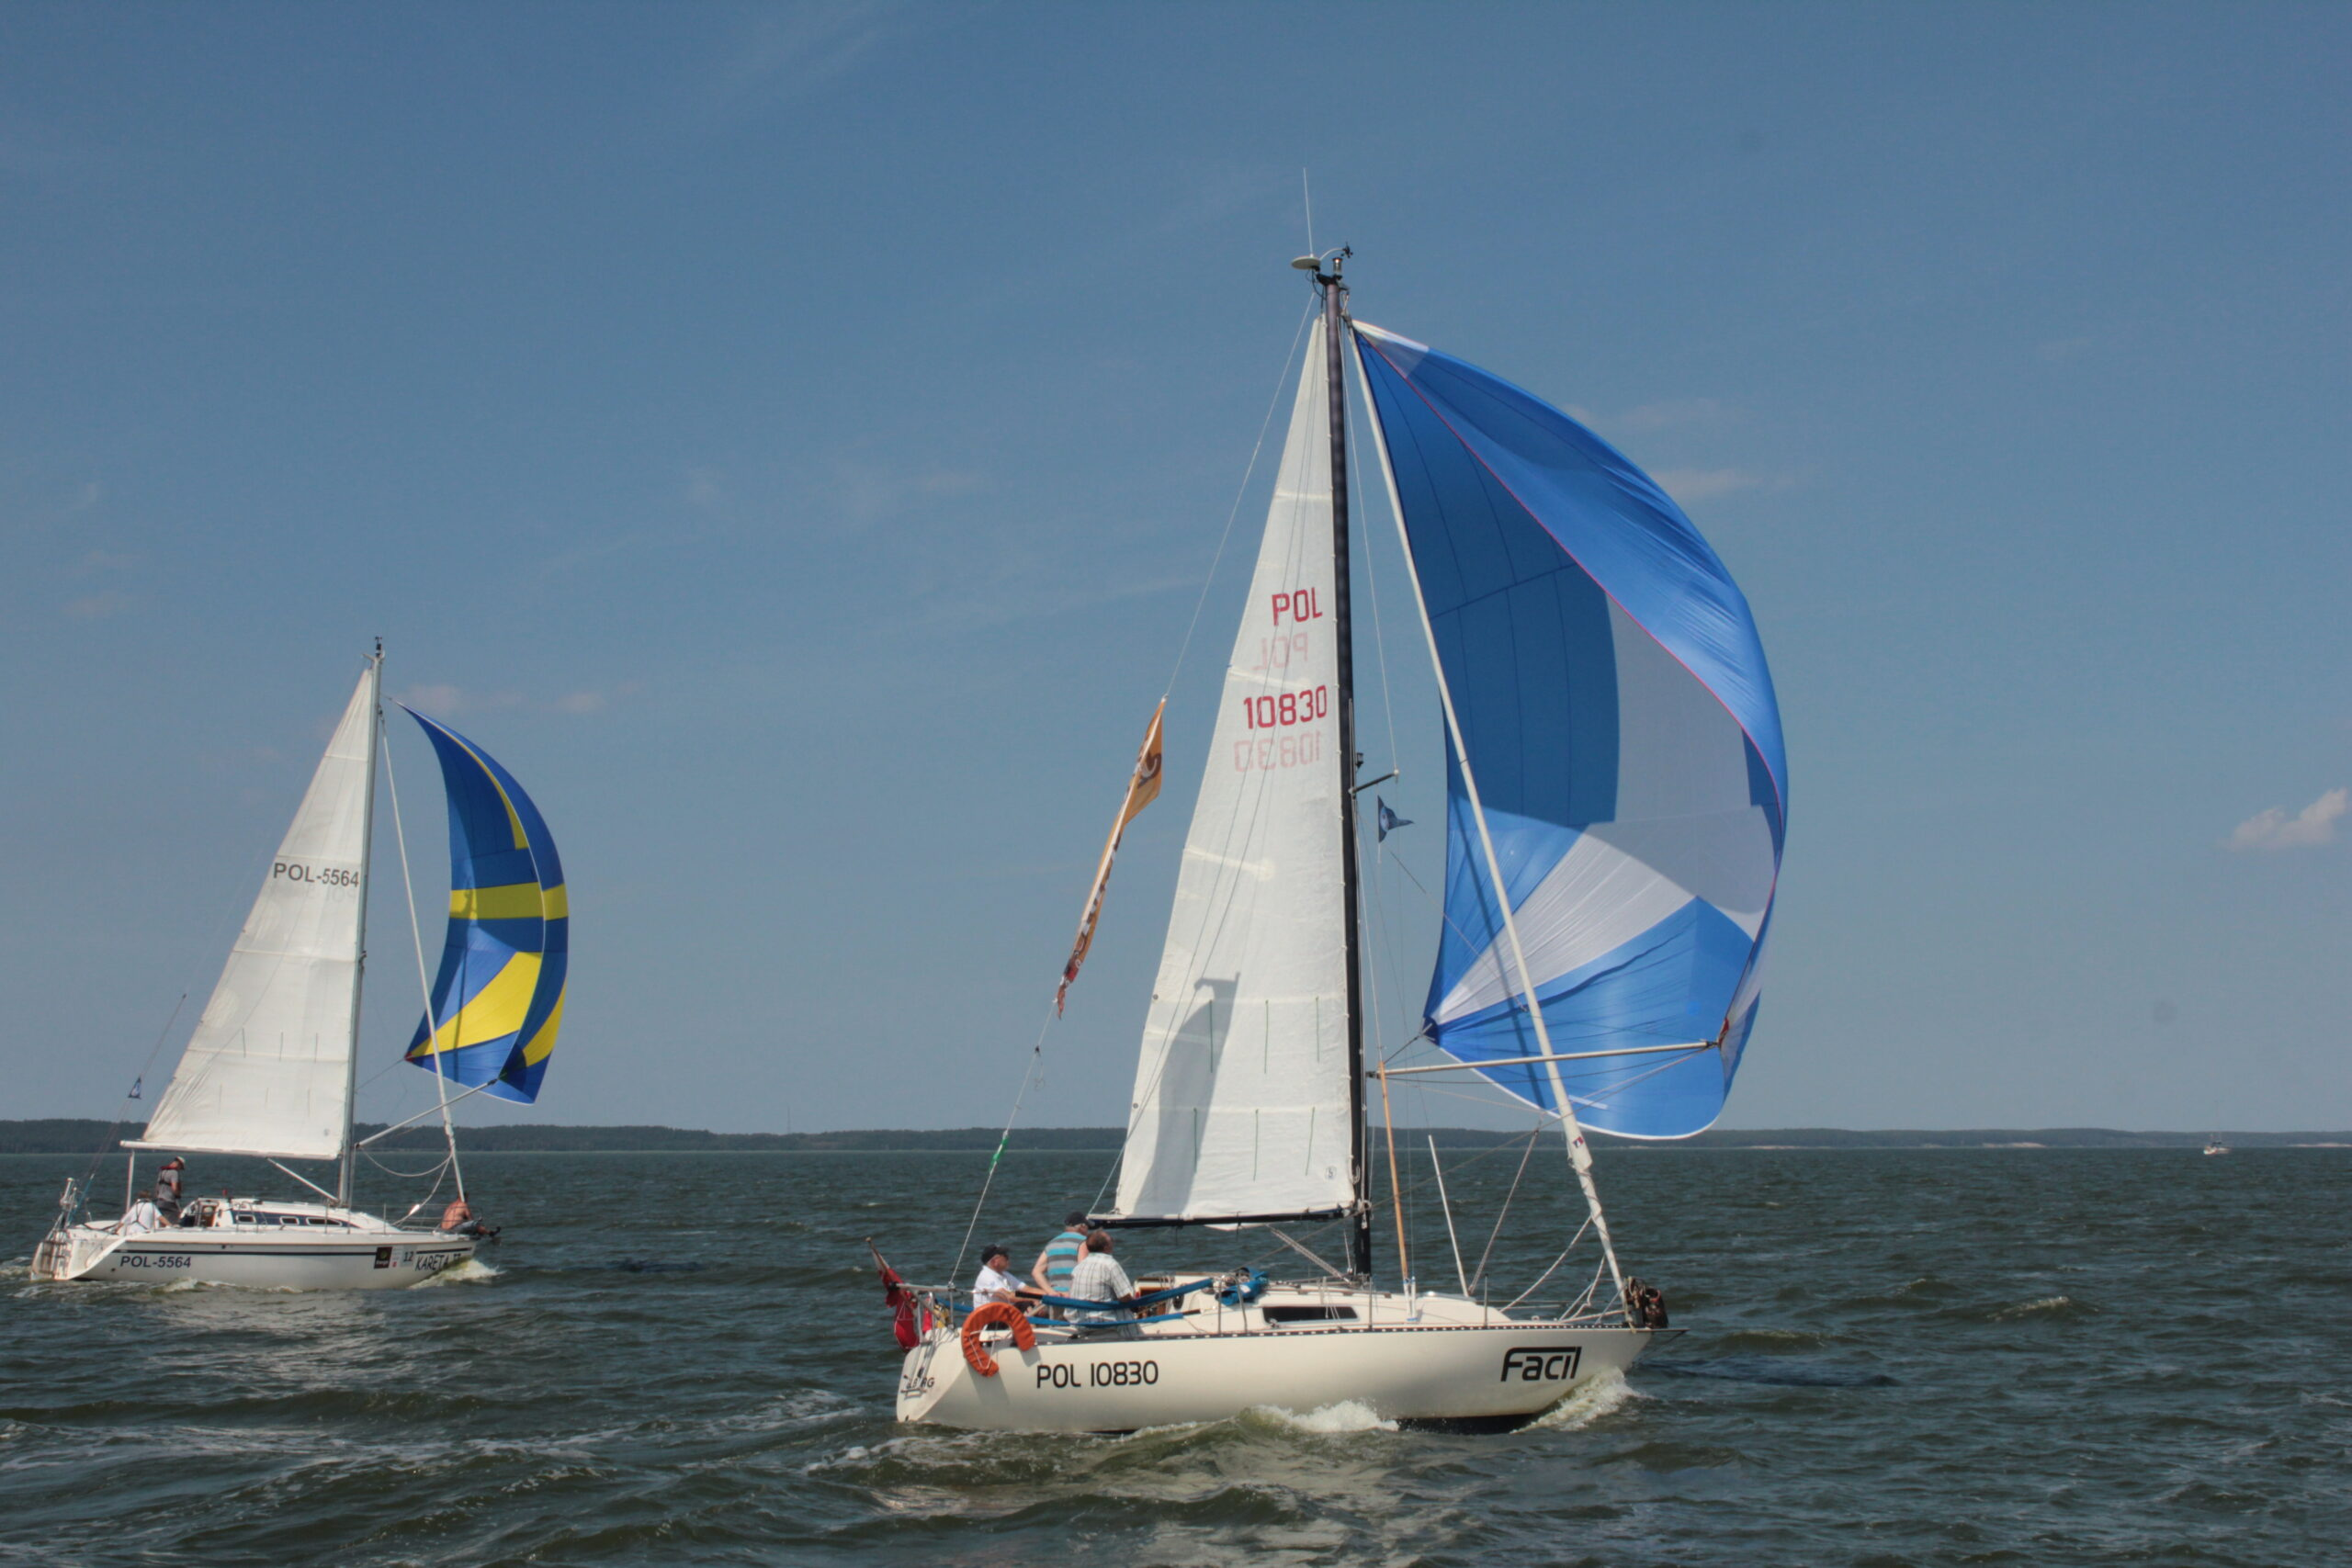 THE THREE MARSHALS' CUP INTERNATIONAL REGATTA WILL BE HELD FOR THE EIGHTH TIME